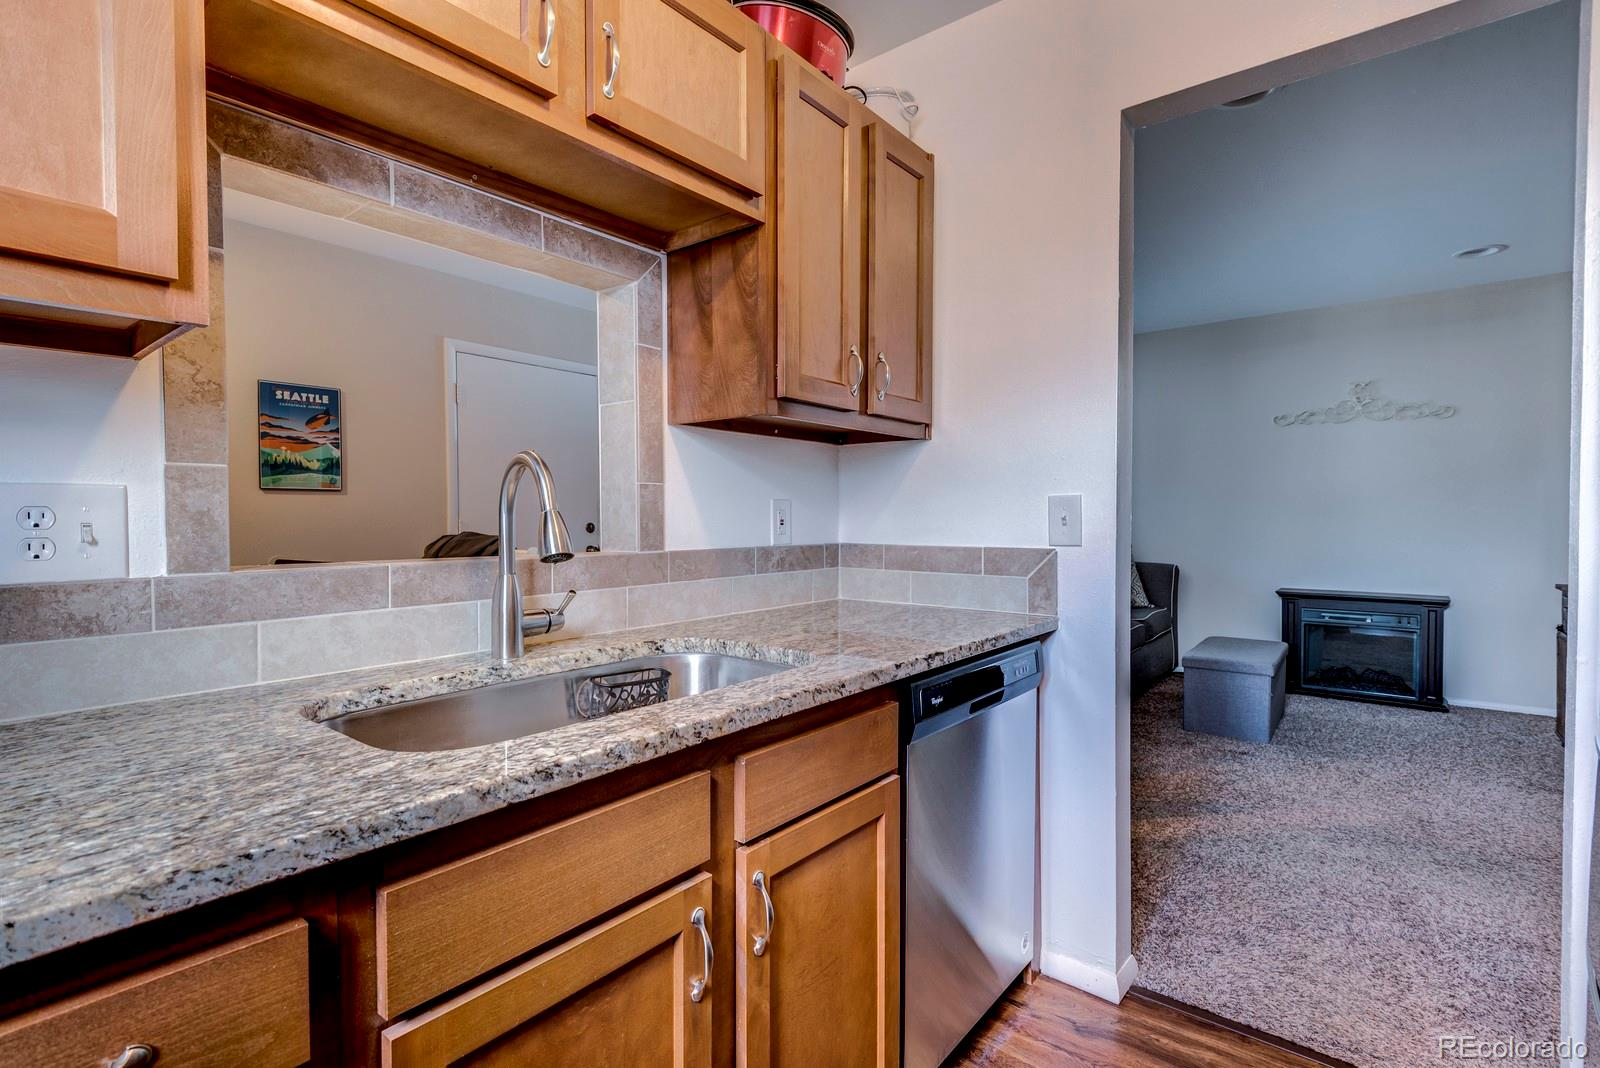 MLS# 2804784 - 5 - 8792 Chase Drive #16, Arvada, CO 80003